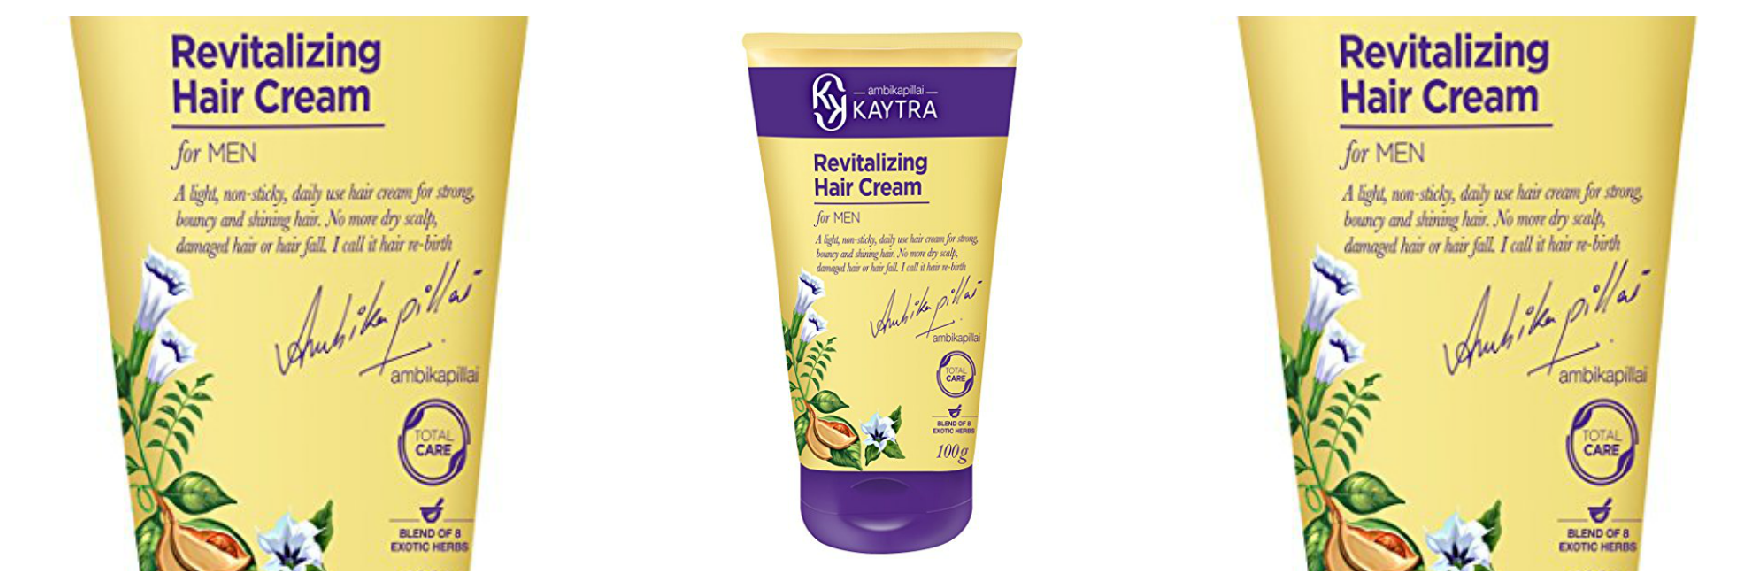 Kaytra Revitalizing Hair Cream The Purple Window